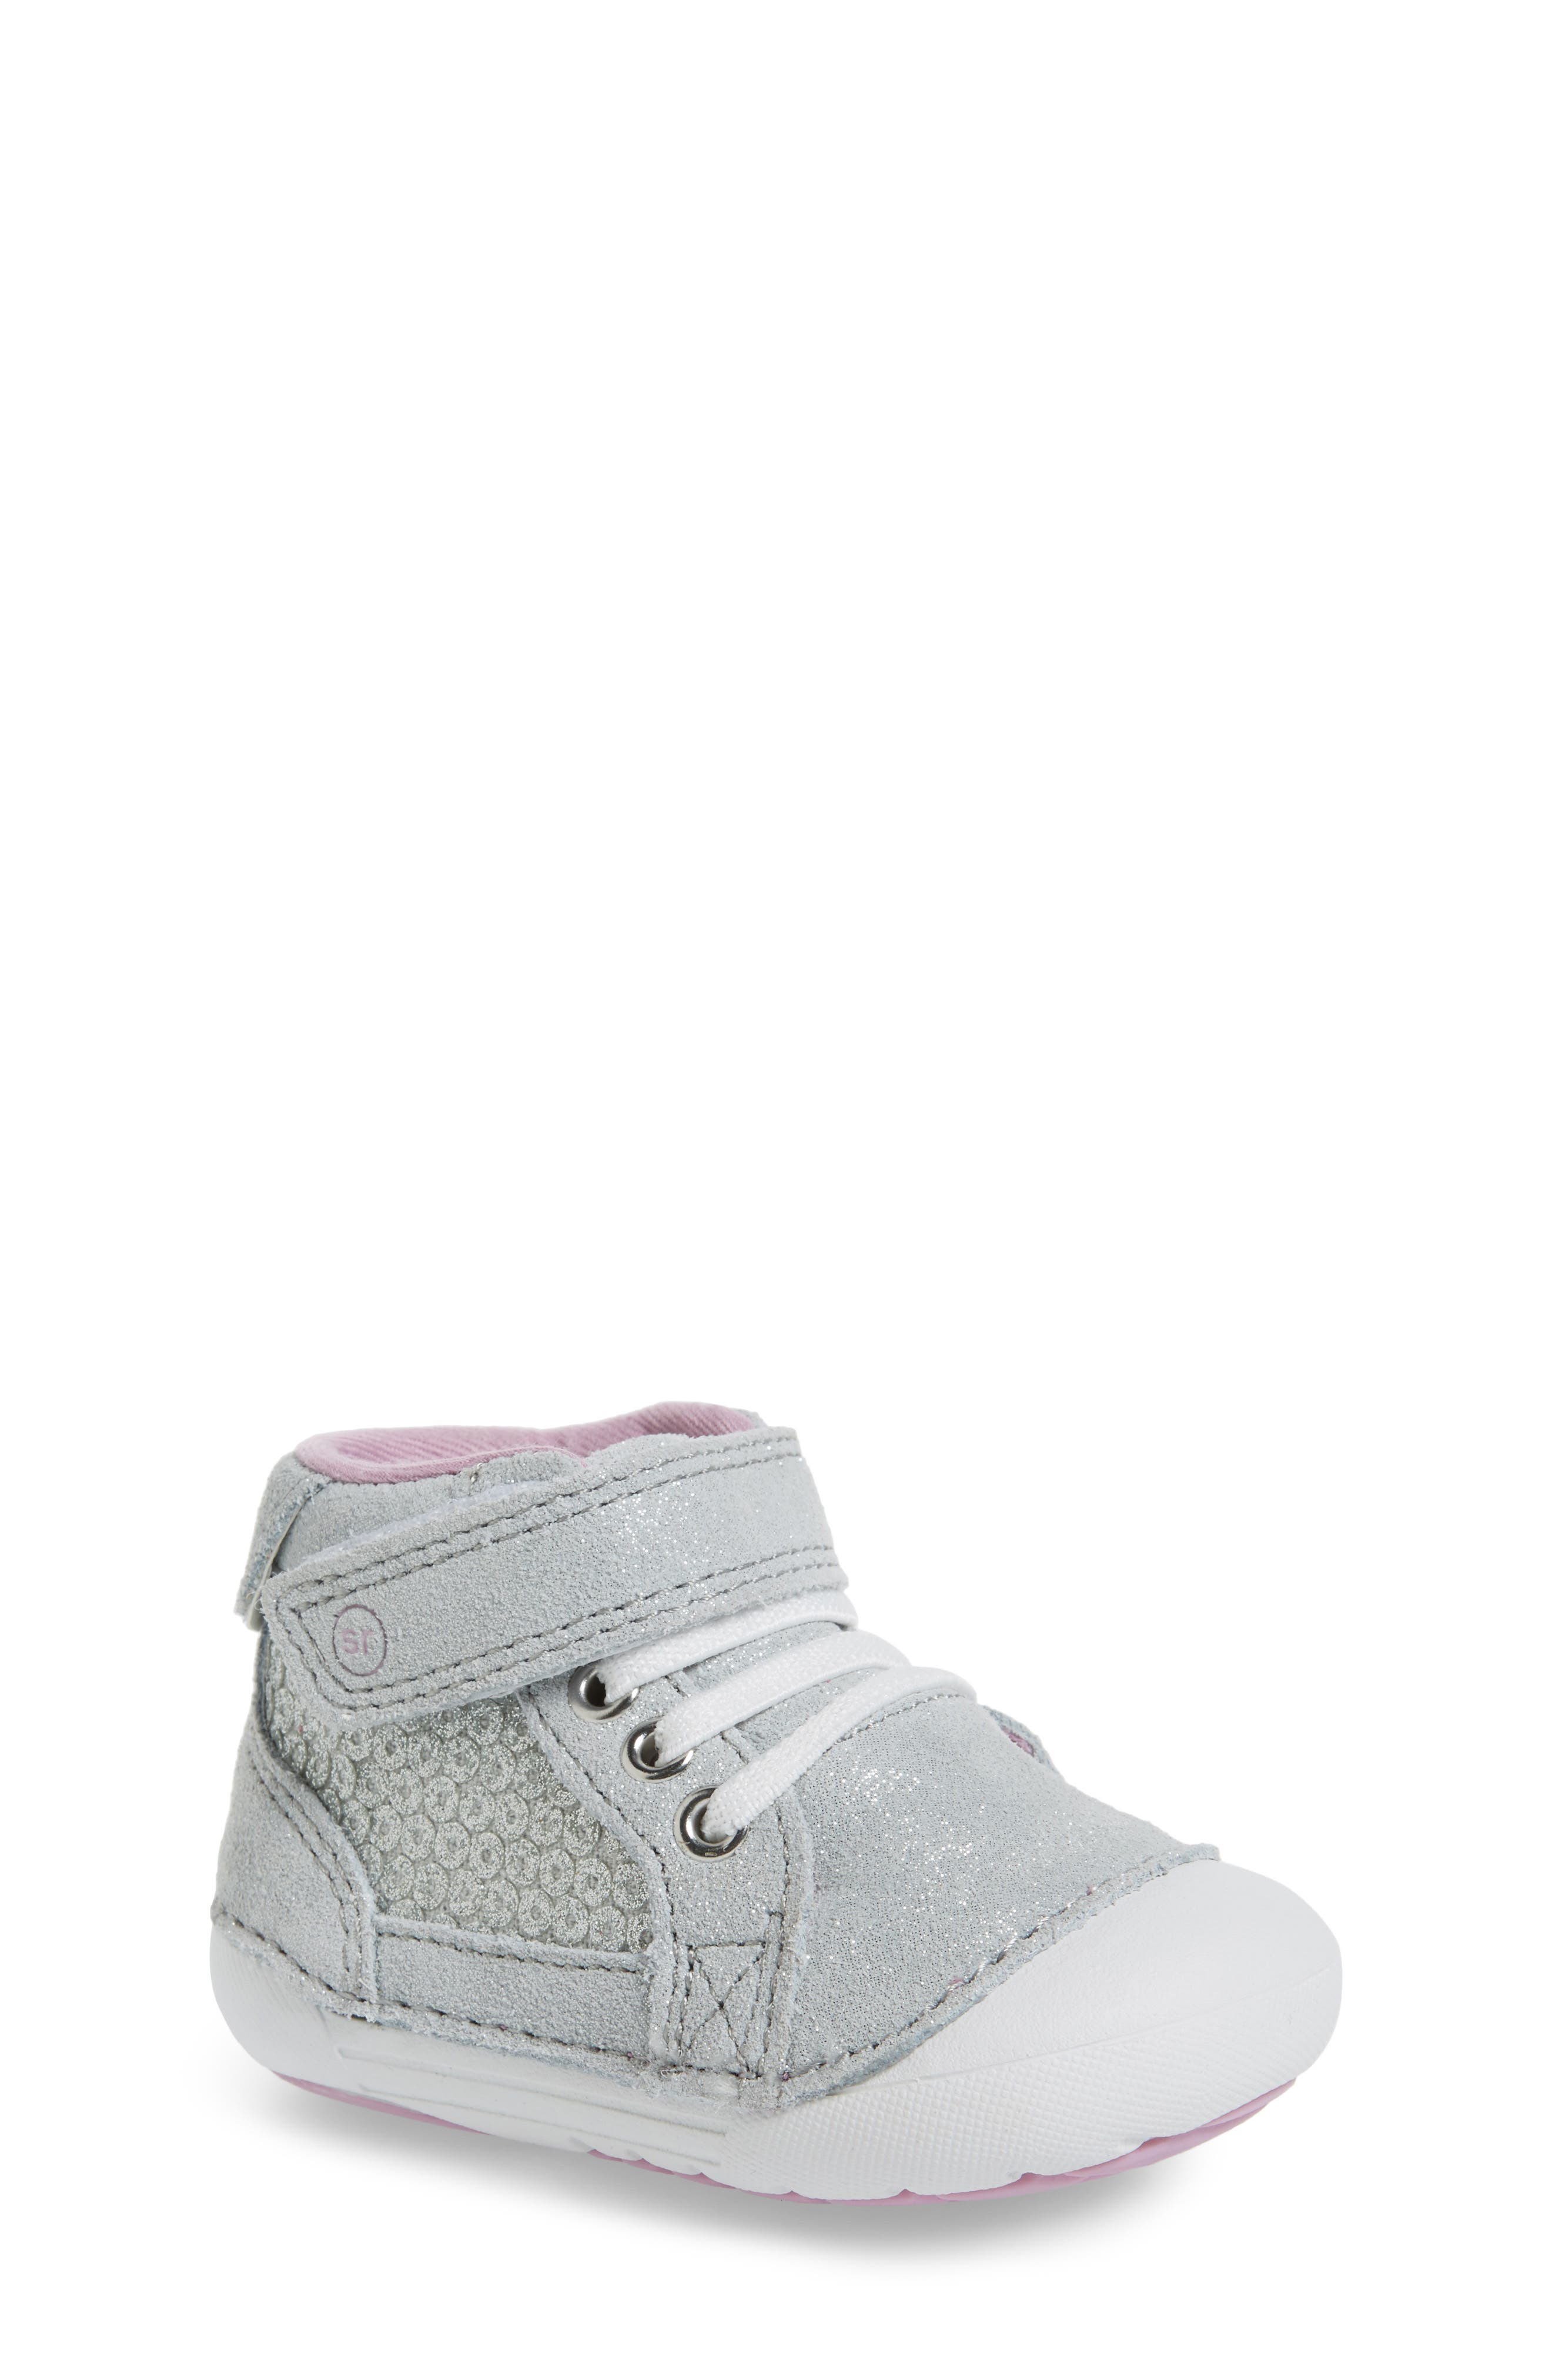 Soft Motion<sup>™</sup> Jada High Top Sneaker,                         Main,                         color, Silver Metallic